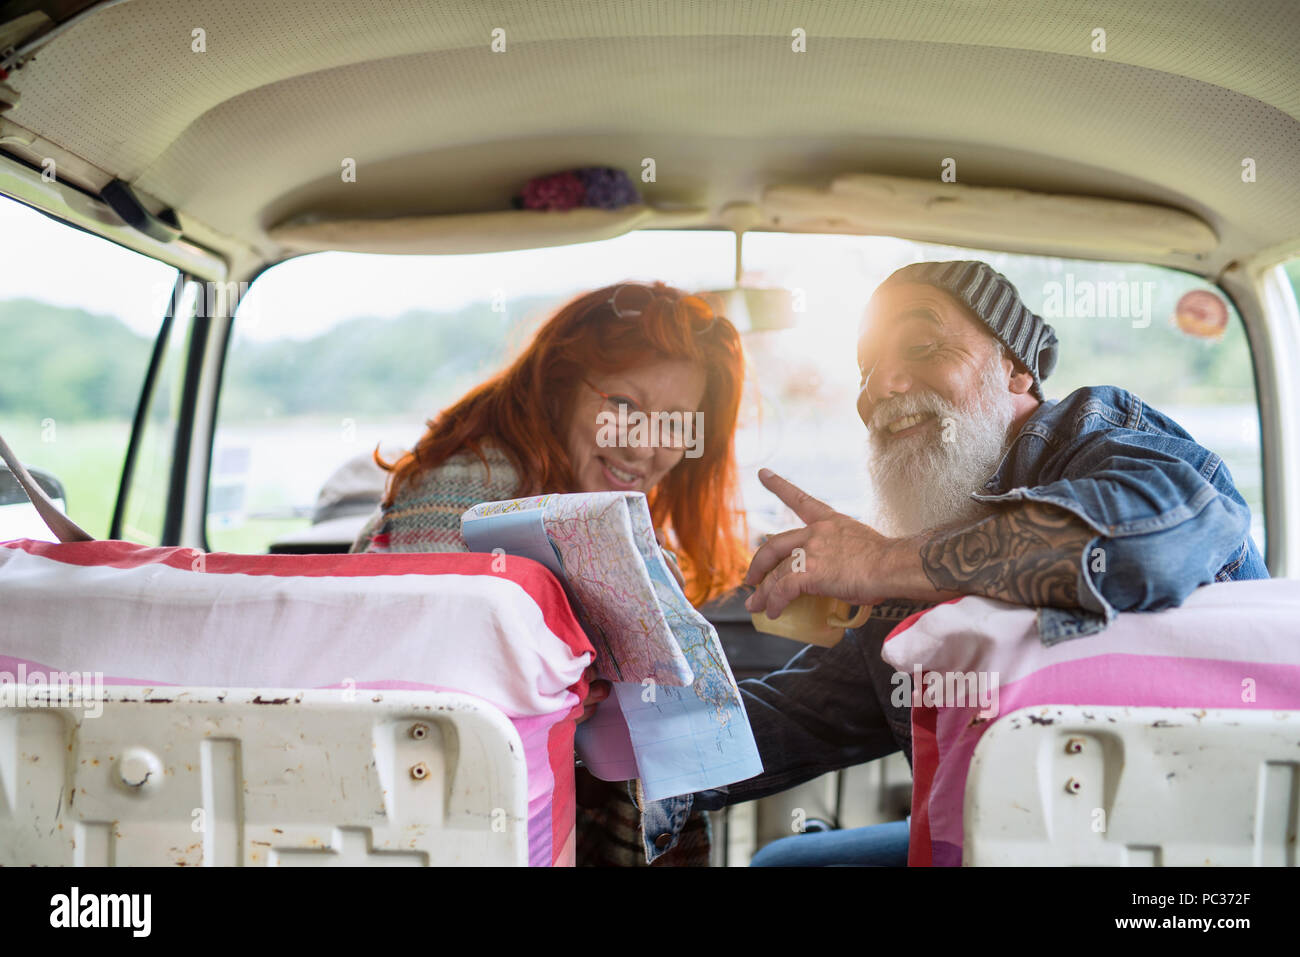 An old hipster couple sitting in a camper van, drinking coffee and looking at a road map. he is tattooed and he wears a white beard, she had red hair - Stock Image